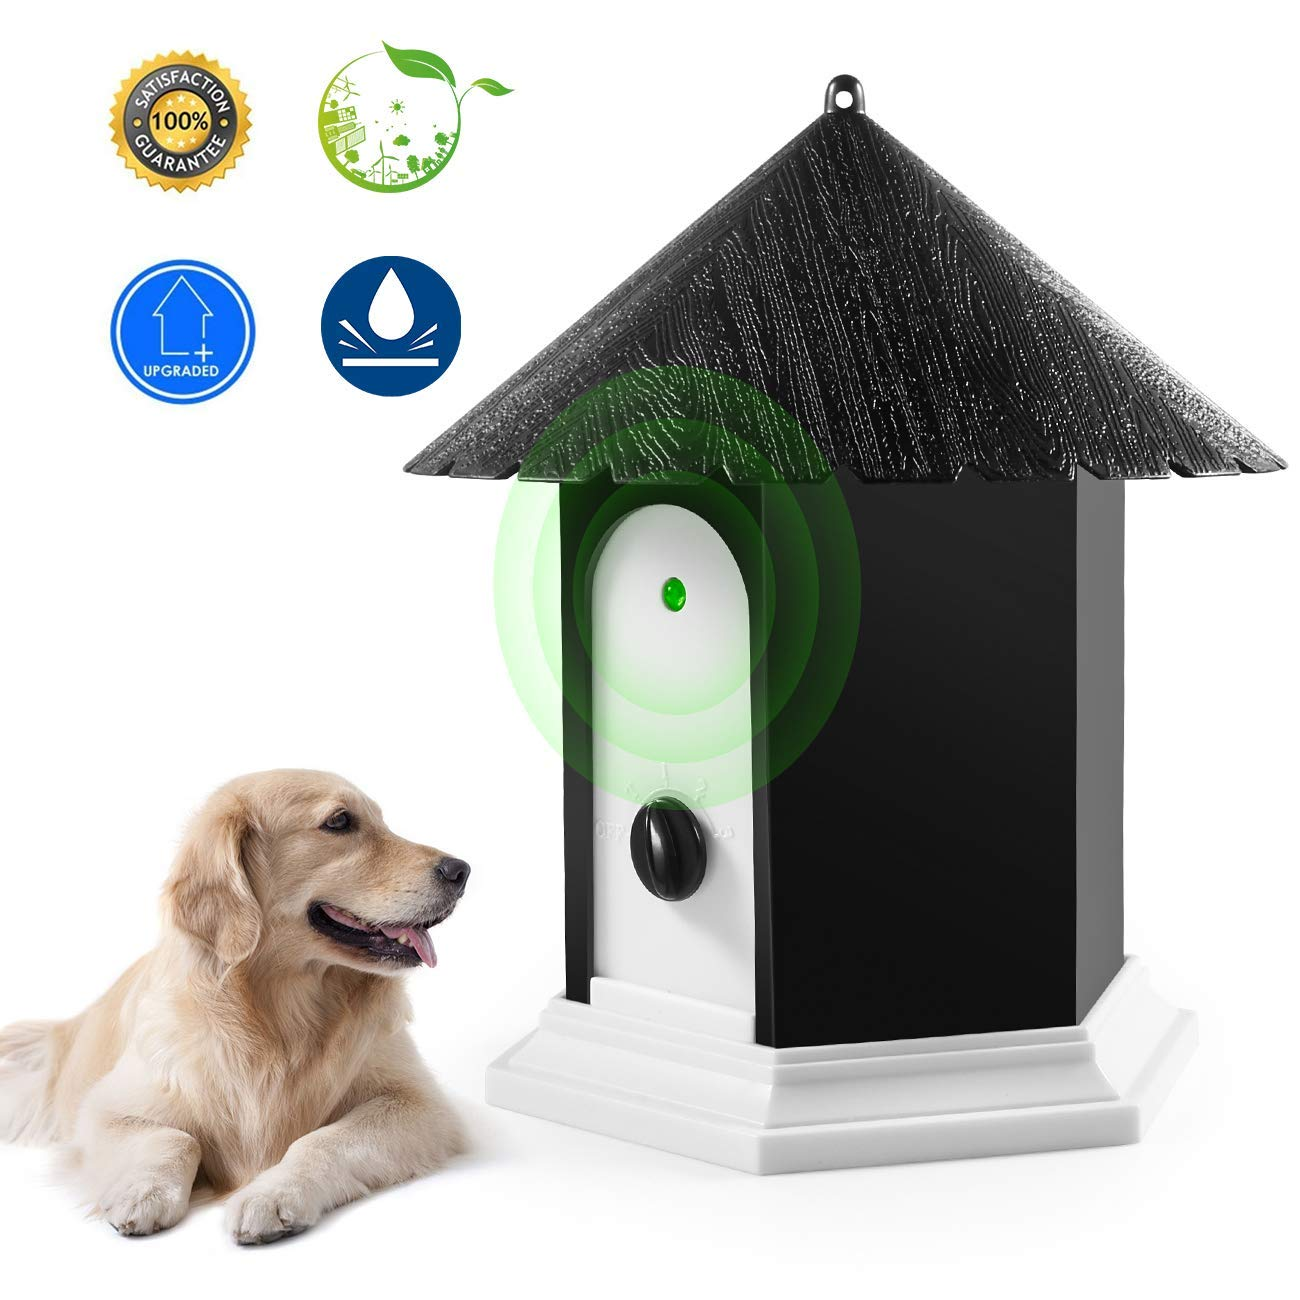 Need an Ultrasonic Dog Bark Deterrent 100w Ultrasonic Generator?